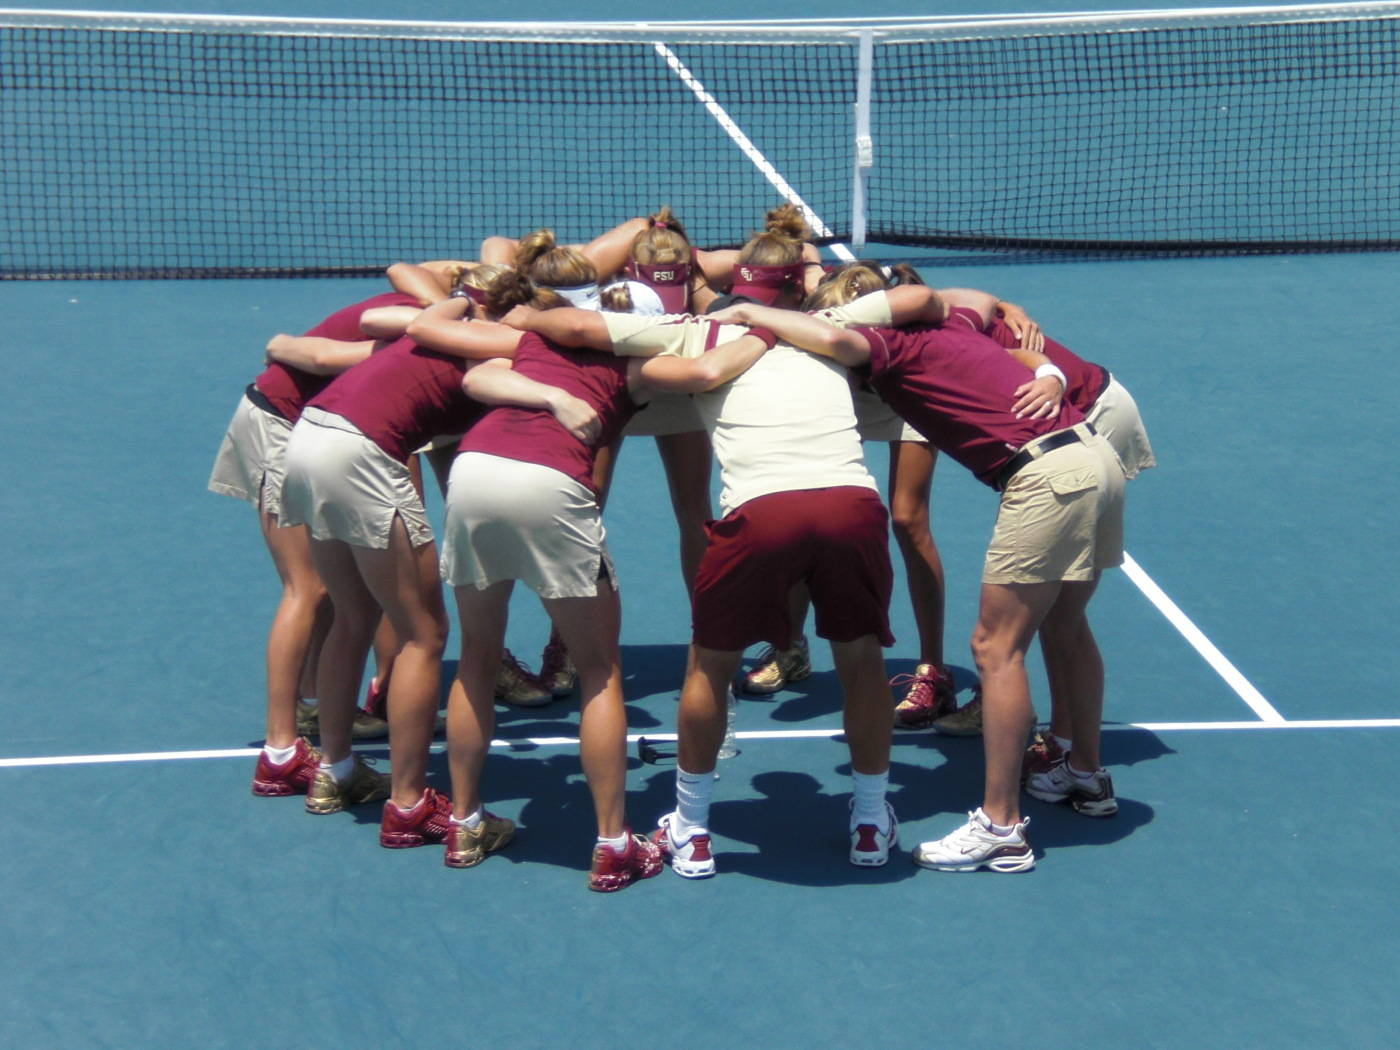 The women's tennis team prepares for a match.